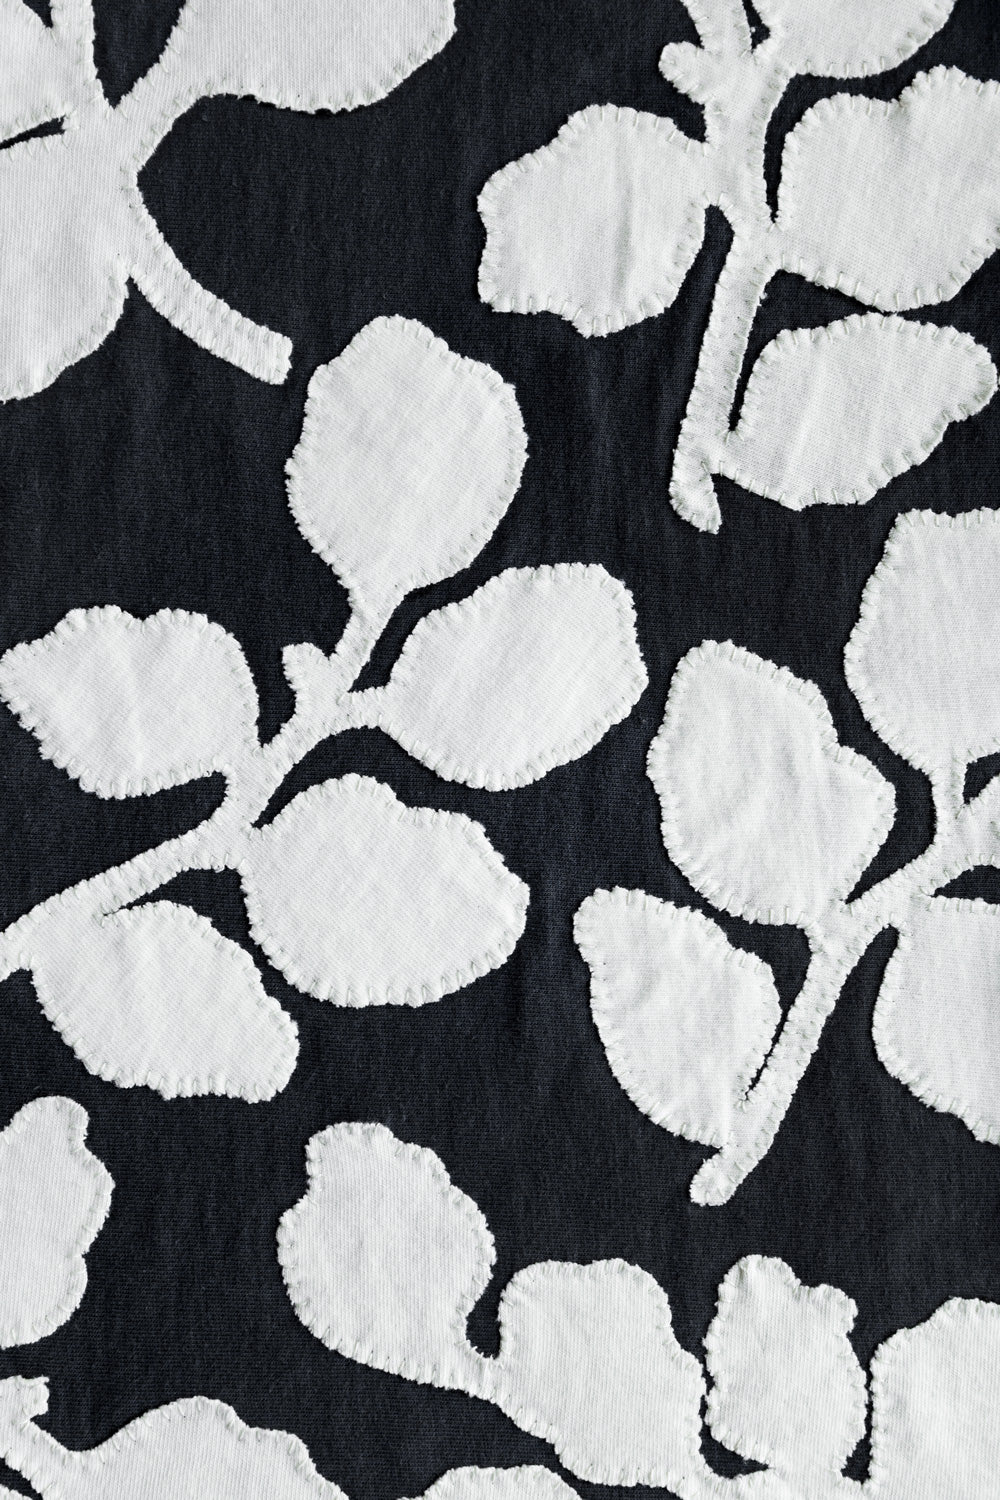 The School of Making White Leaves with Hand Sewing